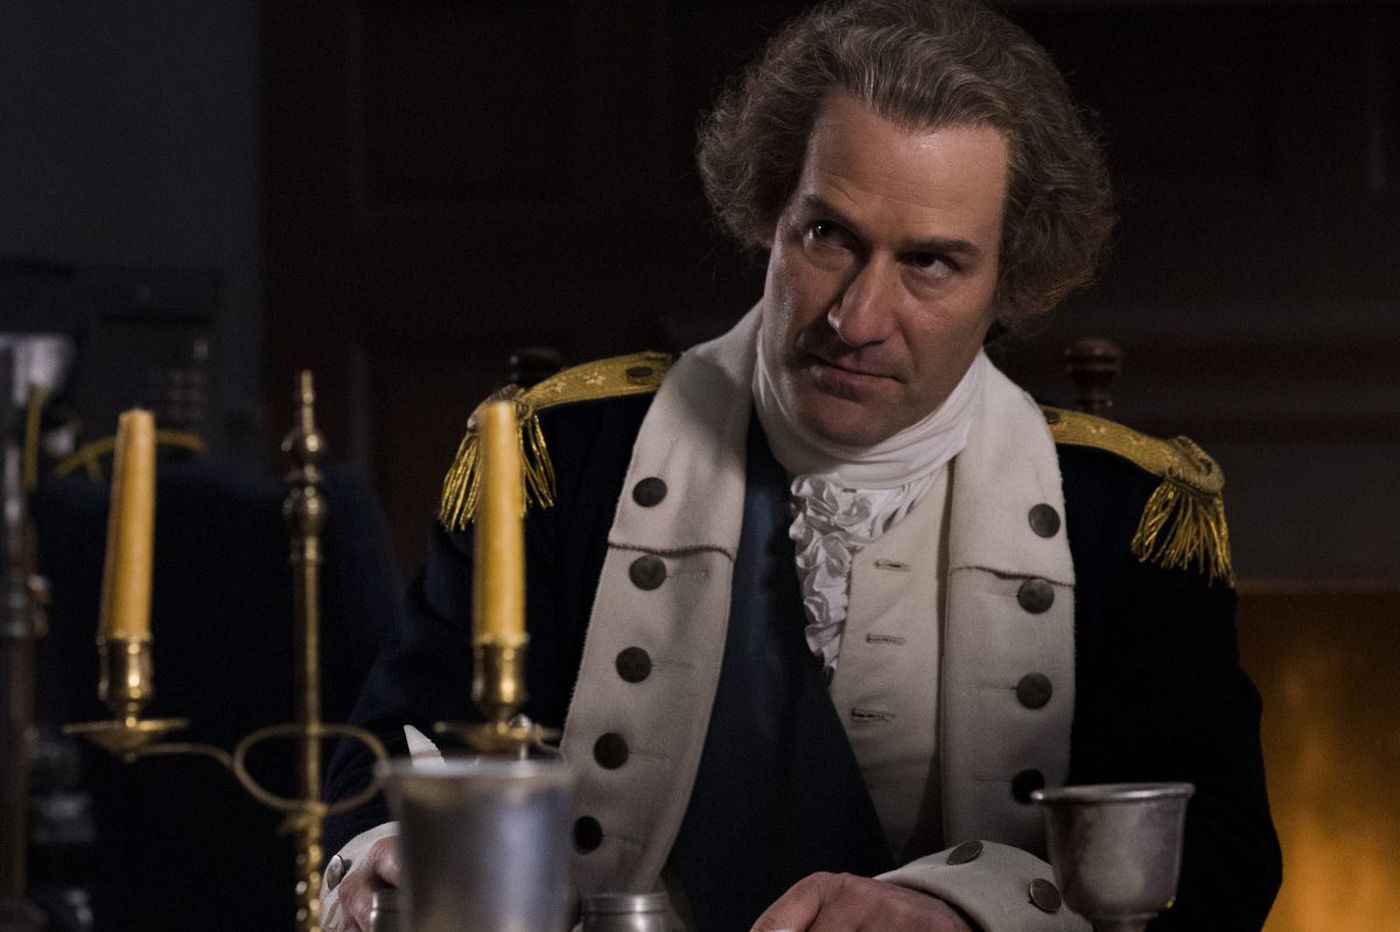 'Washington's Spies' author: Father of our country was 'natural' spymaster